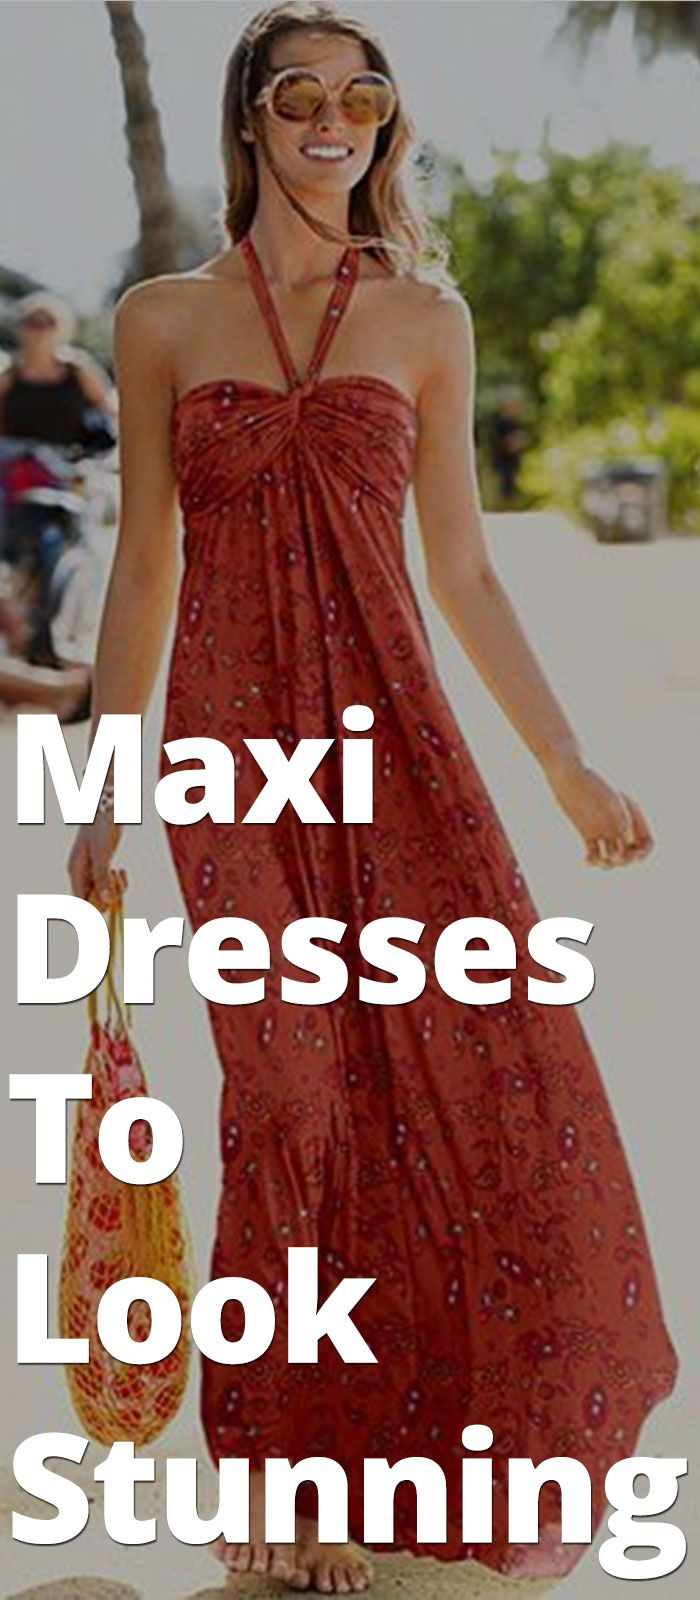 Maxi Dresses To Look Stunning